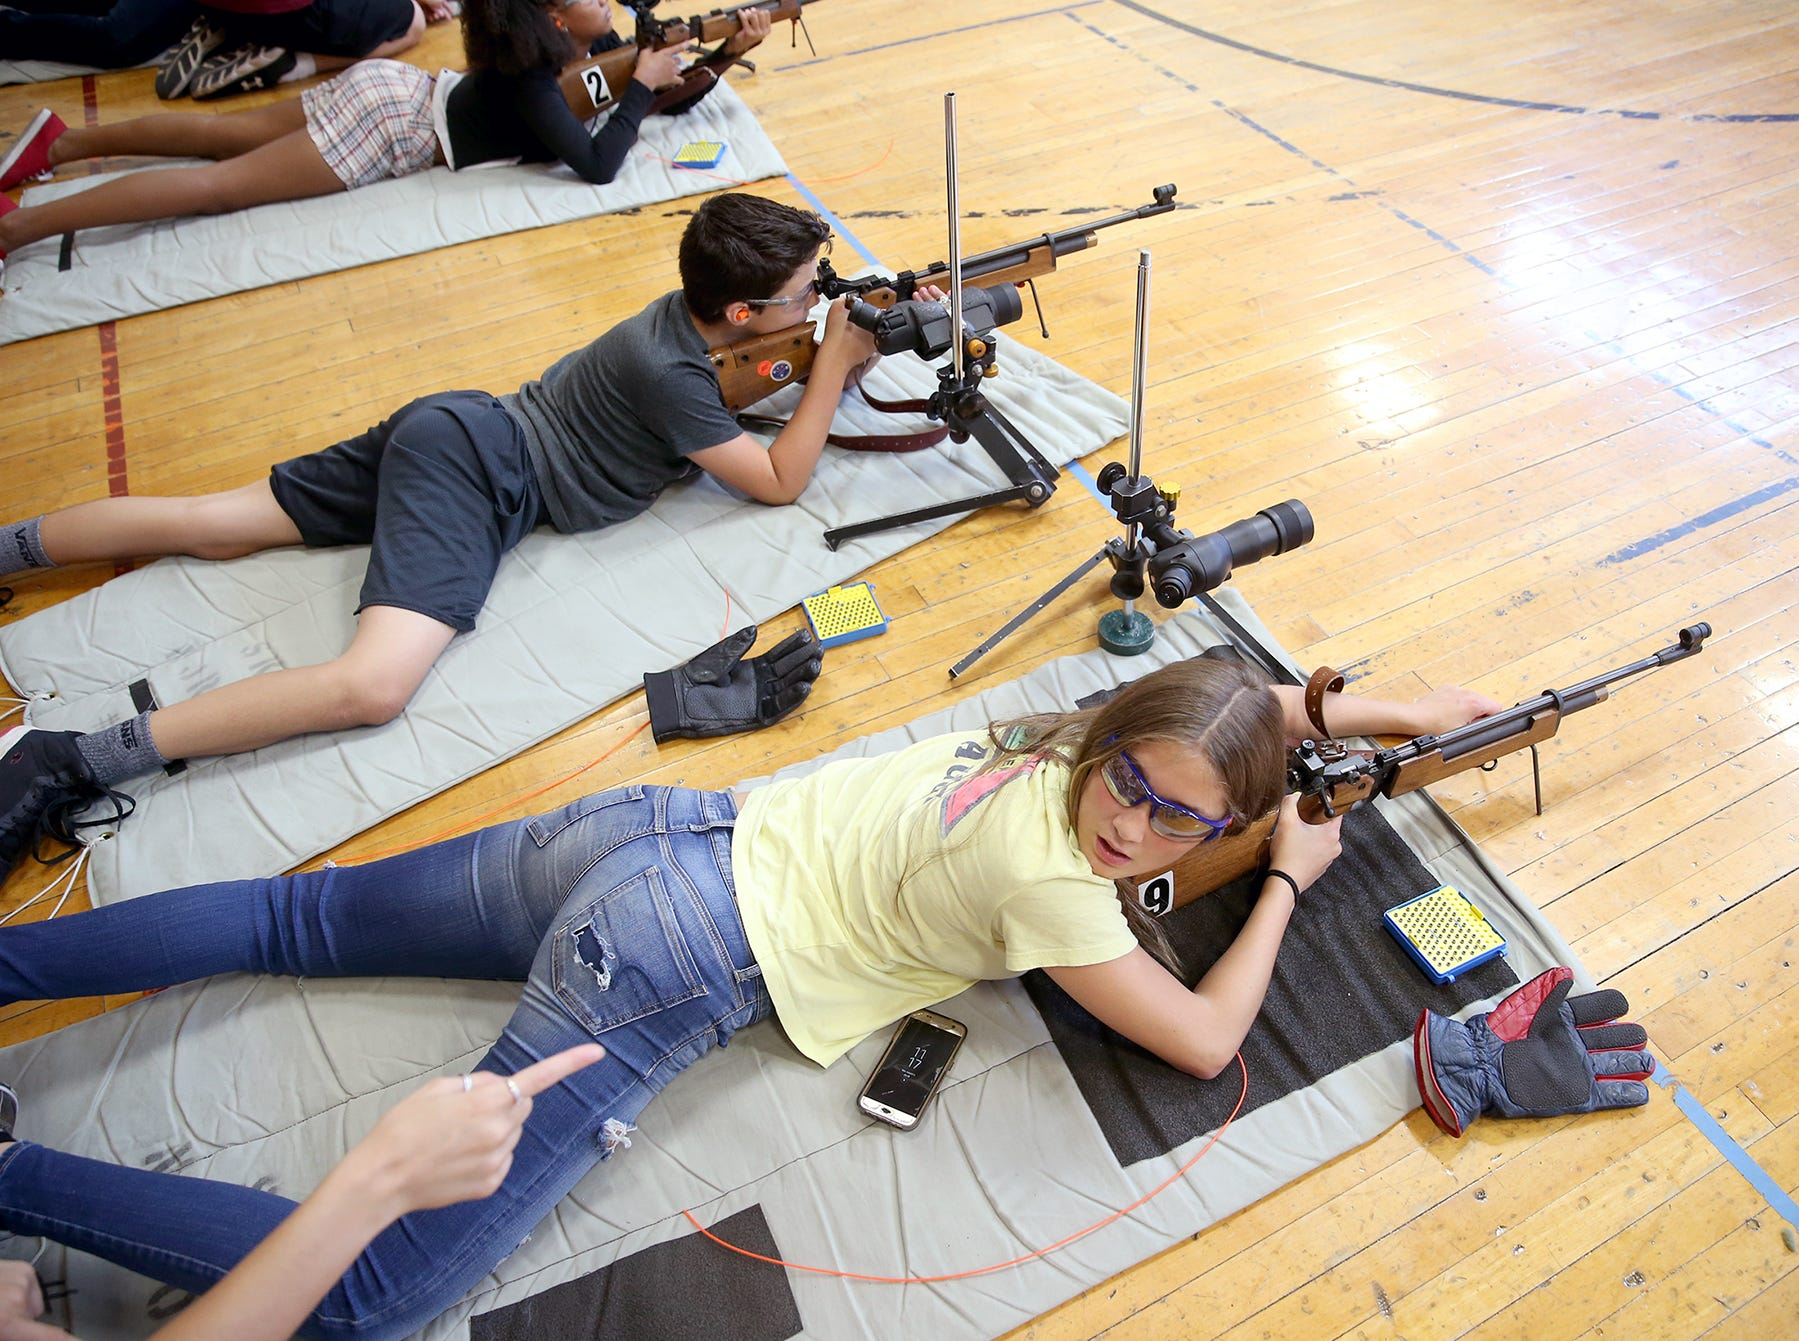 Hailey Roberts, 15, of Port Orchard looks at her twin sister Brooklyn for pointers at the South Kitsap High School NJROTC Wolf Battalion Rifle Camp runs from August 8-10, at the National Guard Armory in Port Orchard.The camp teaches rifle safety, and shooting technics.She is a student in the Sk NJROTC program,